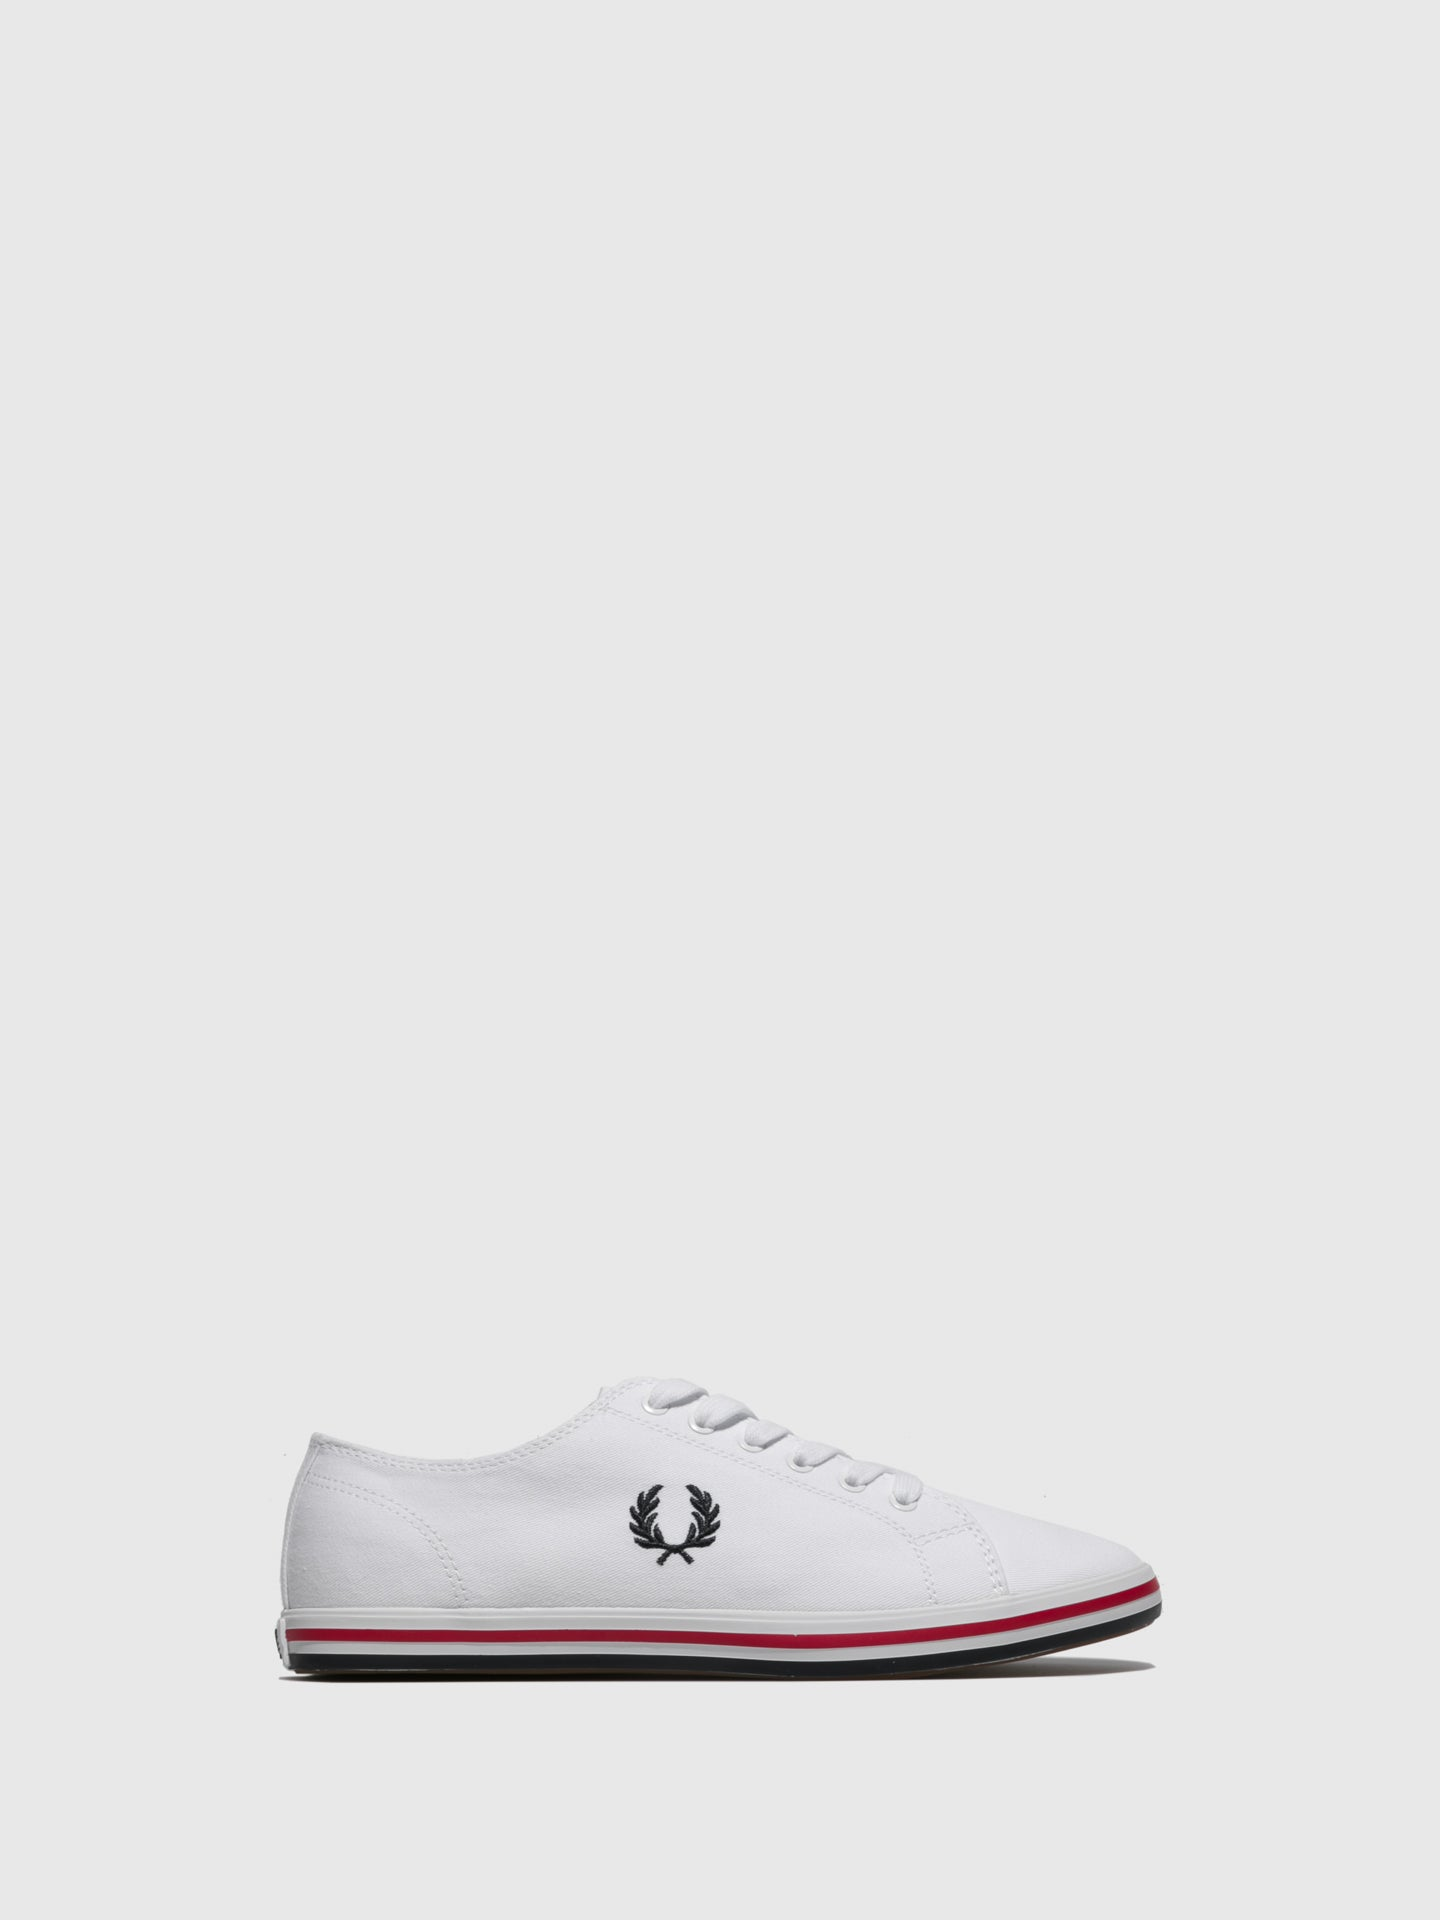 Fred Perry White Lace-up Trainers